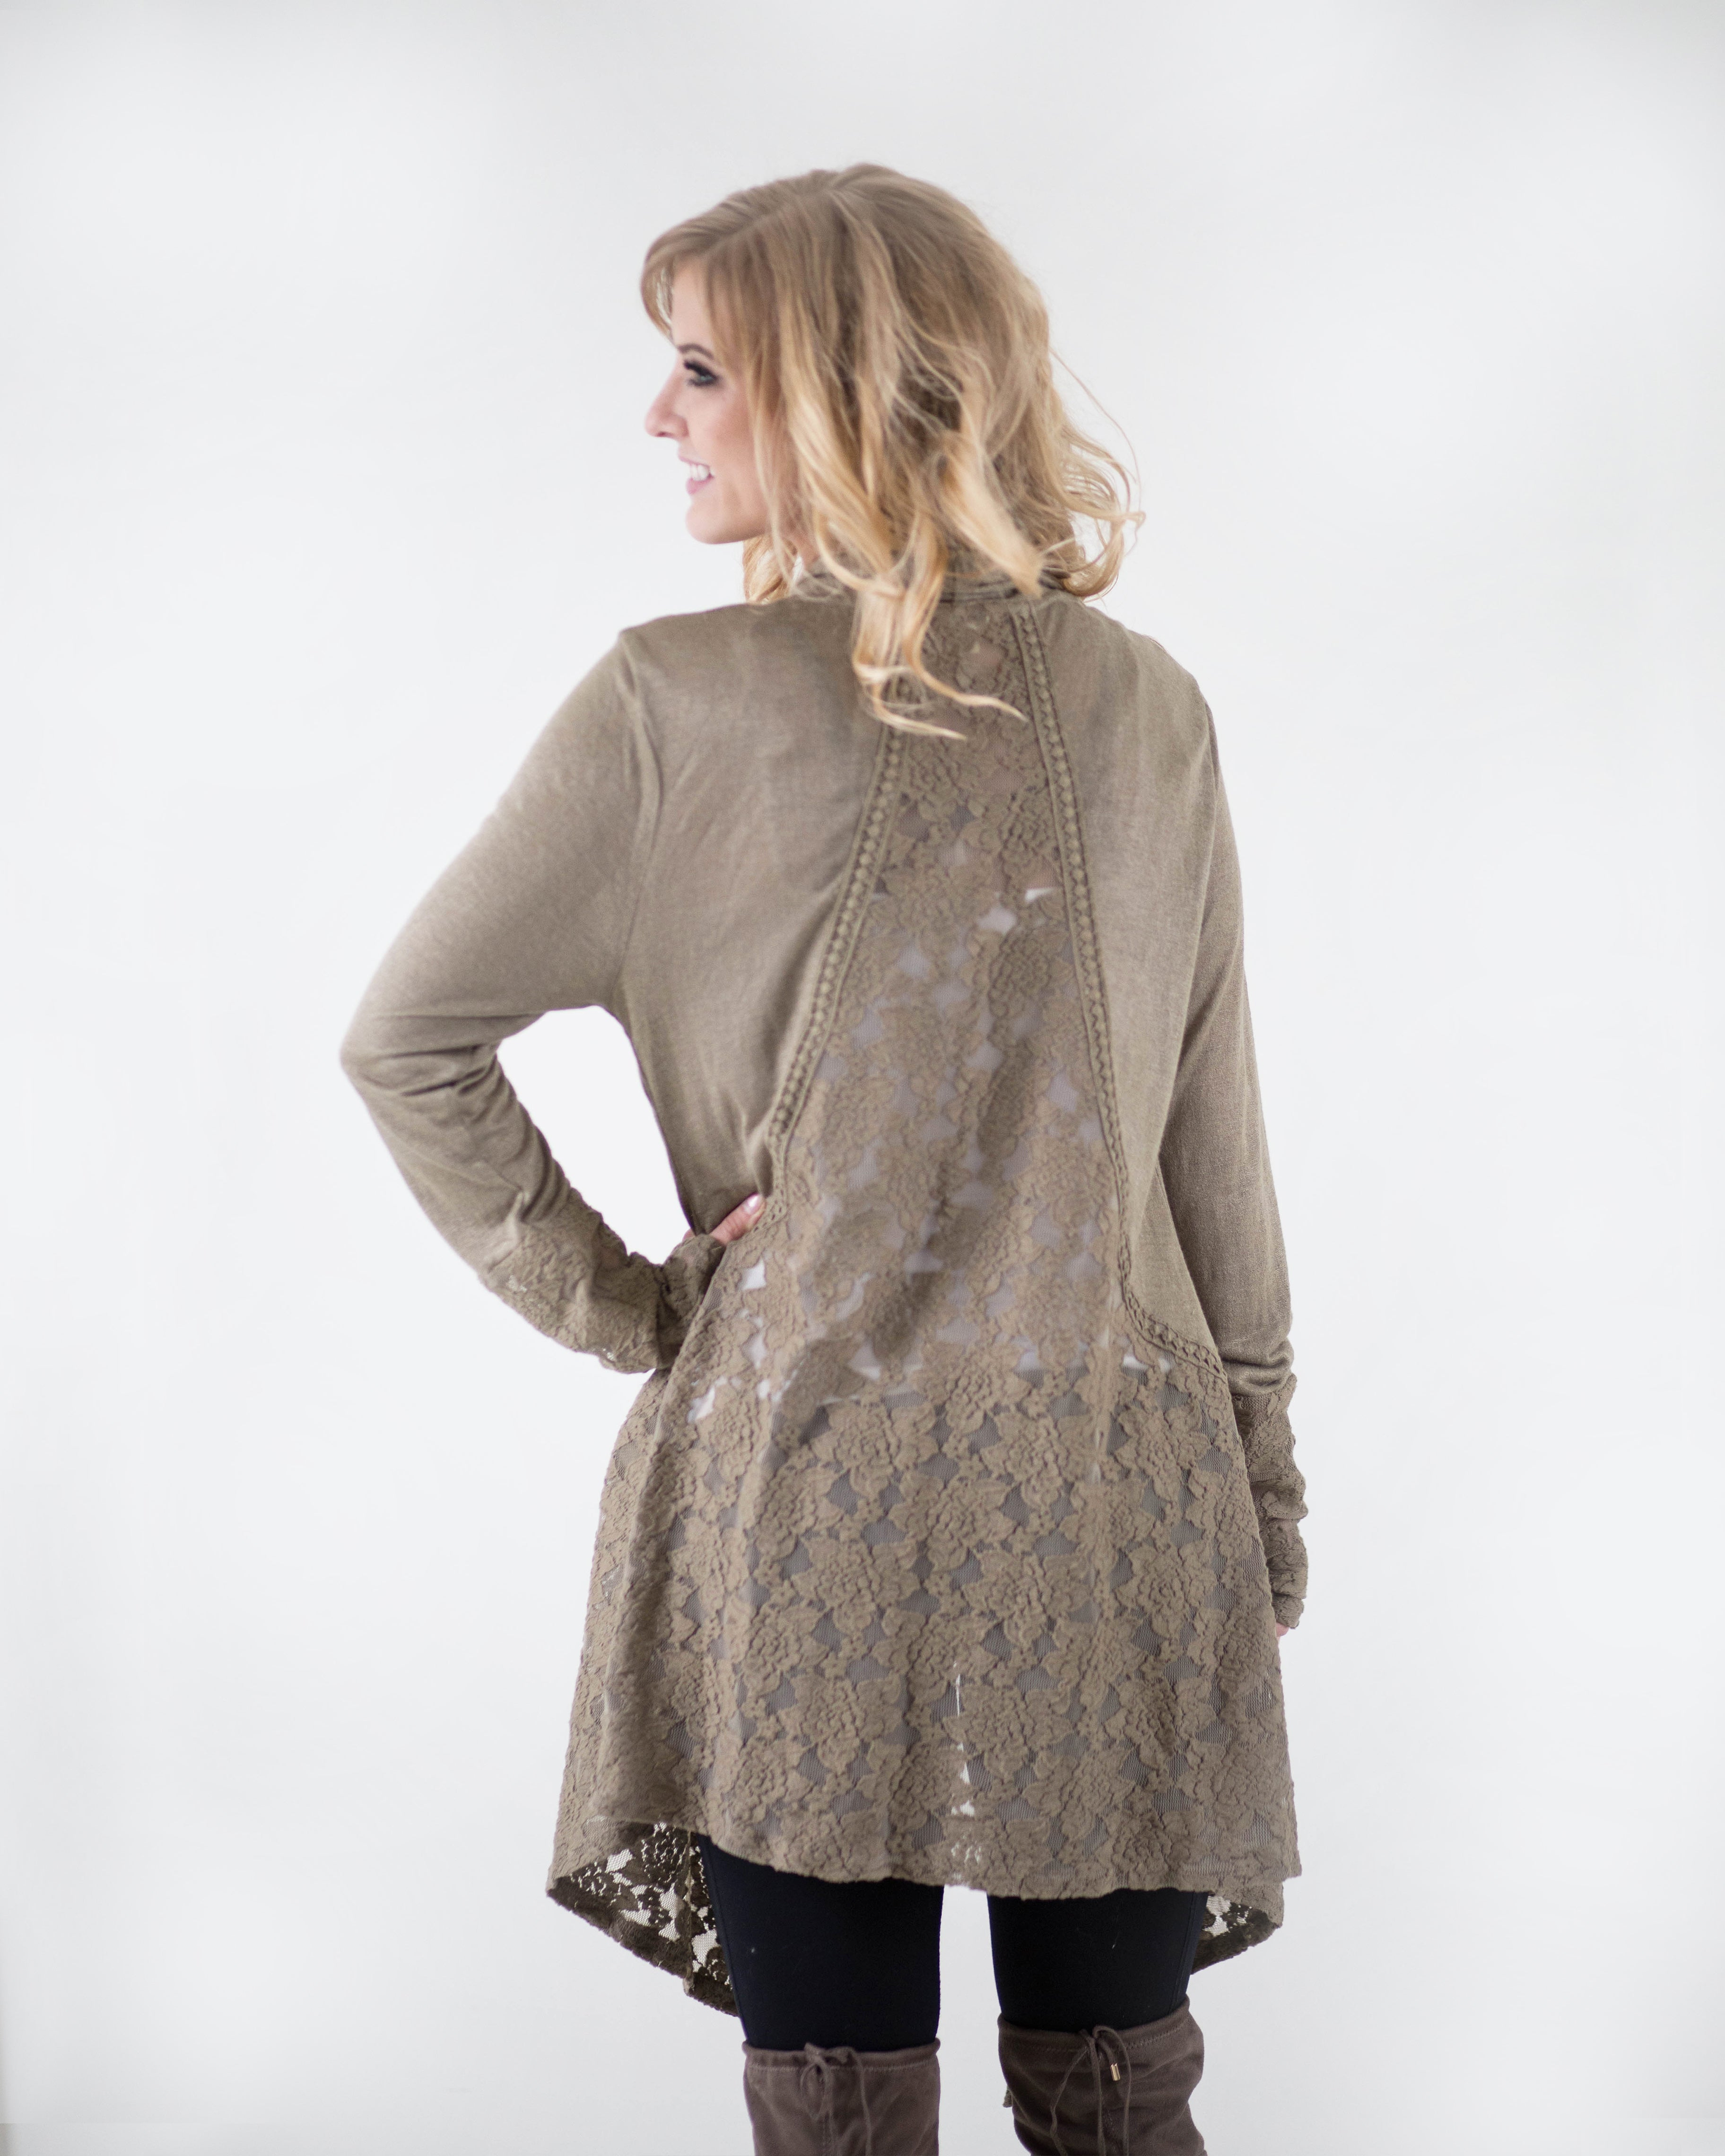 Lovely Tapered Lace Cardigan | Rose & Remington